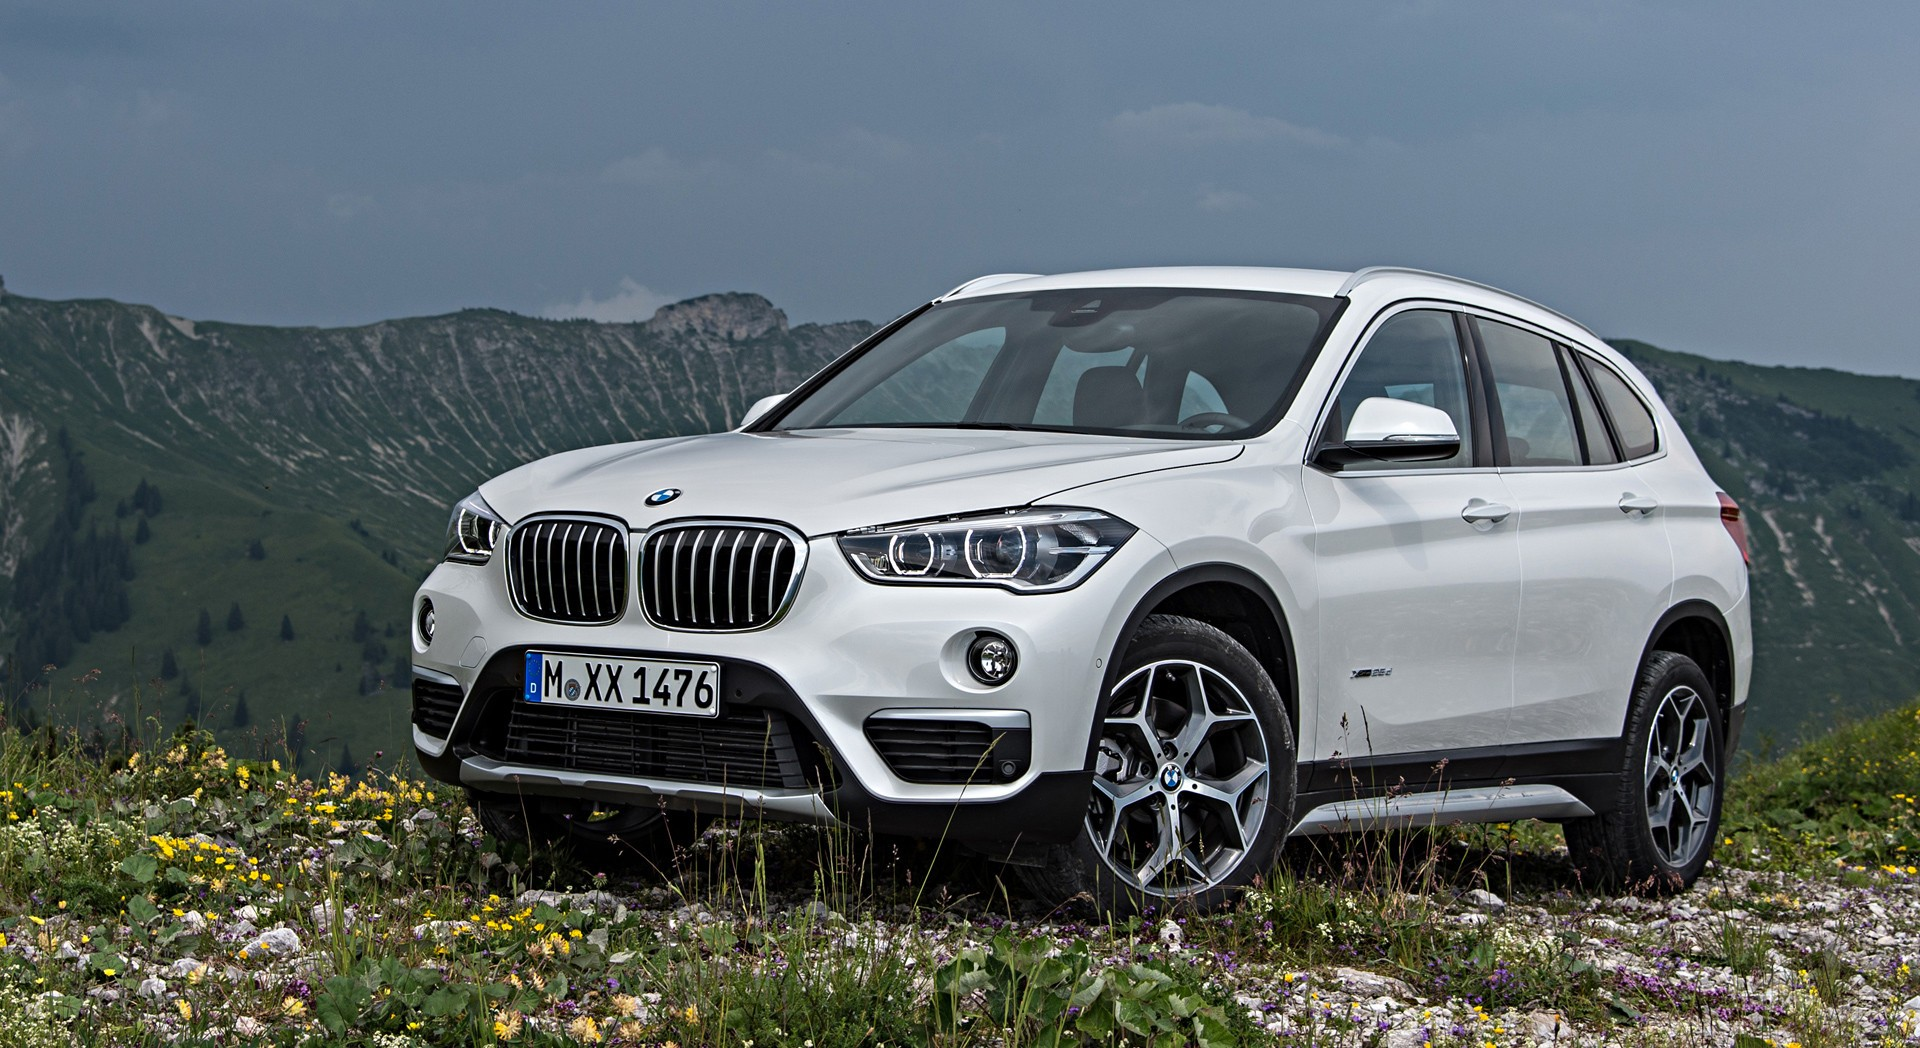 bmw x1 white car hd desktop wallpapers 4k hd. Black Bedroom Furniture Sets. Home Design Ideas